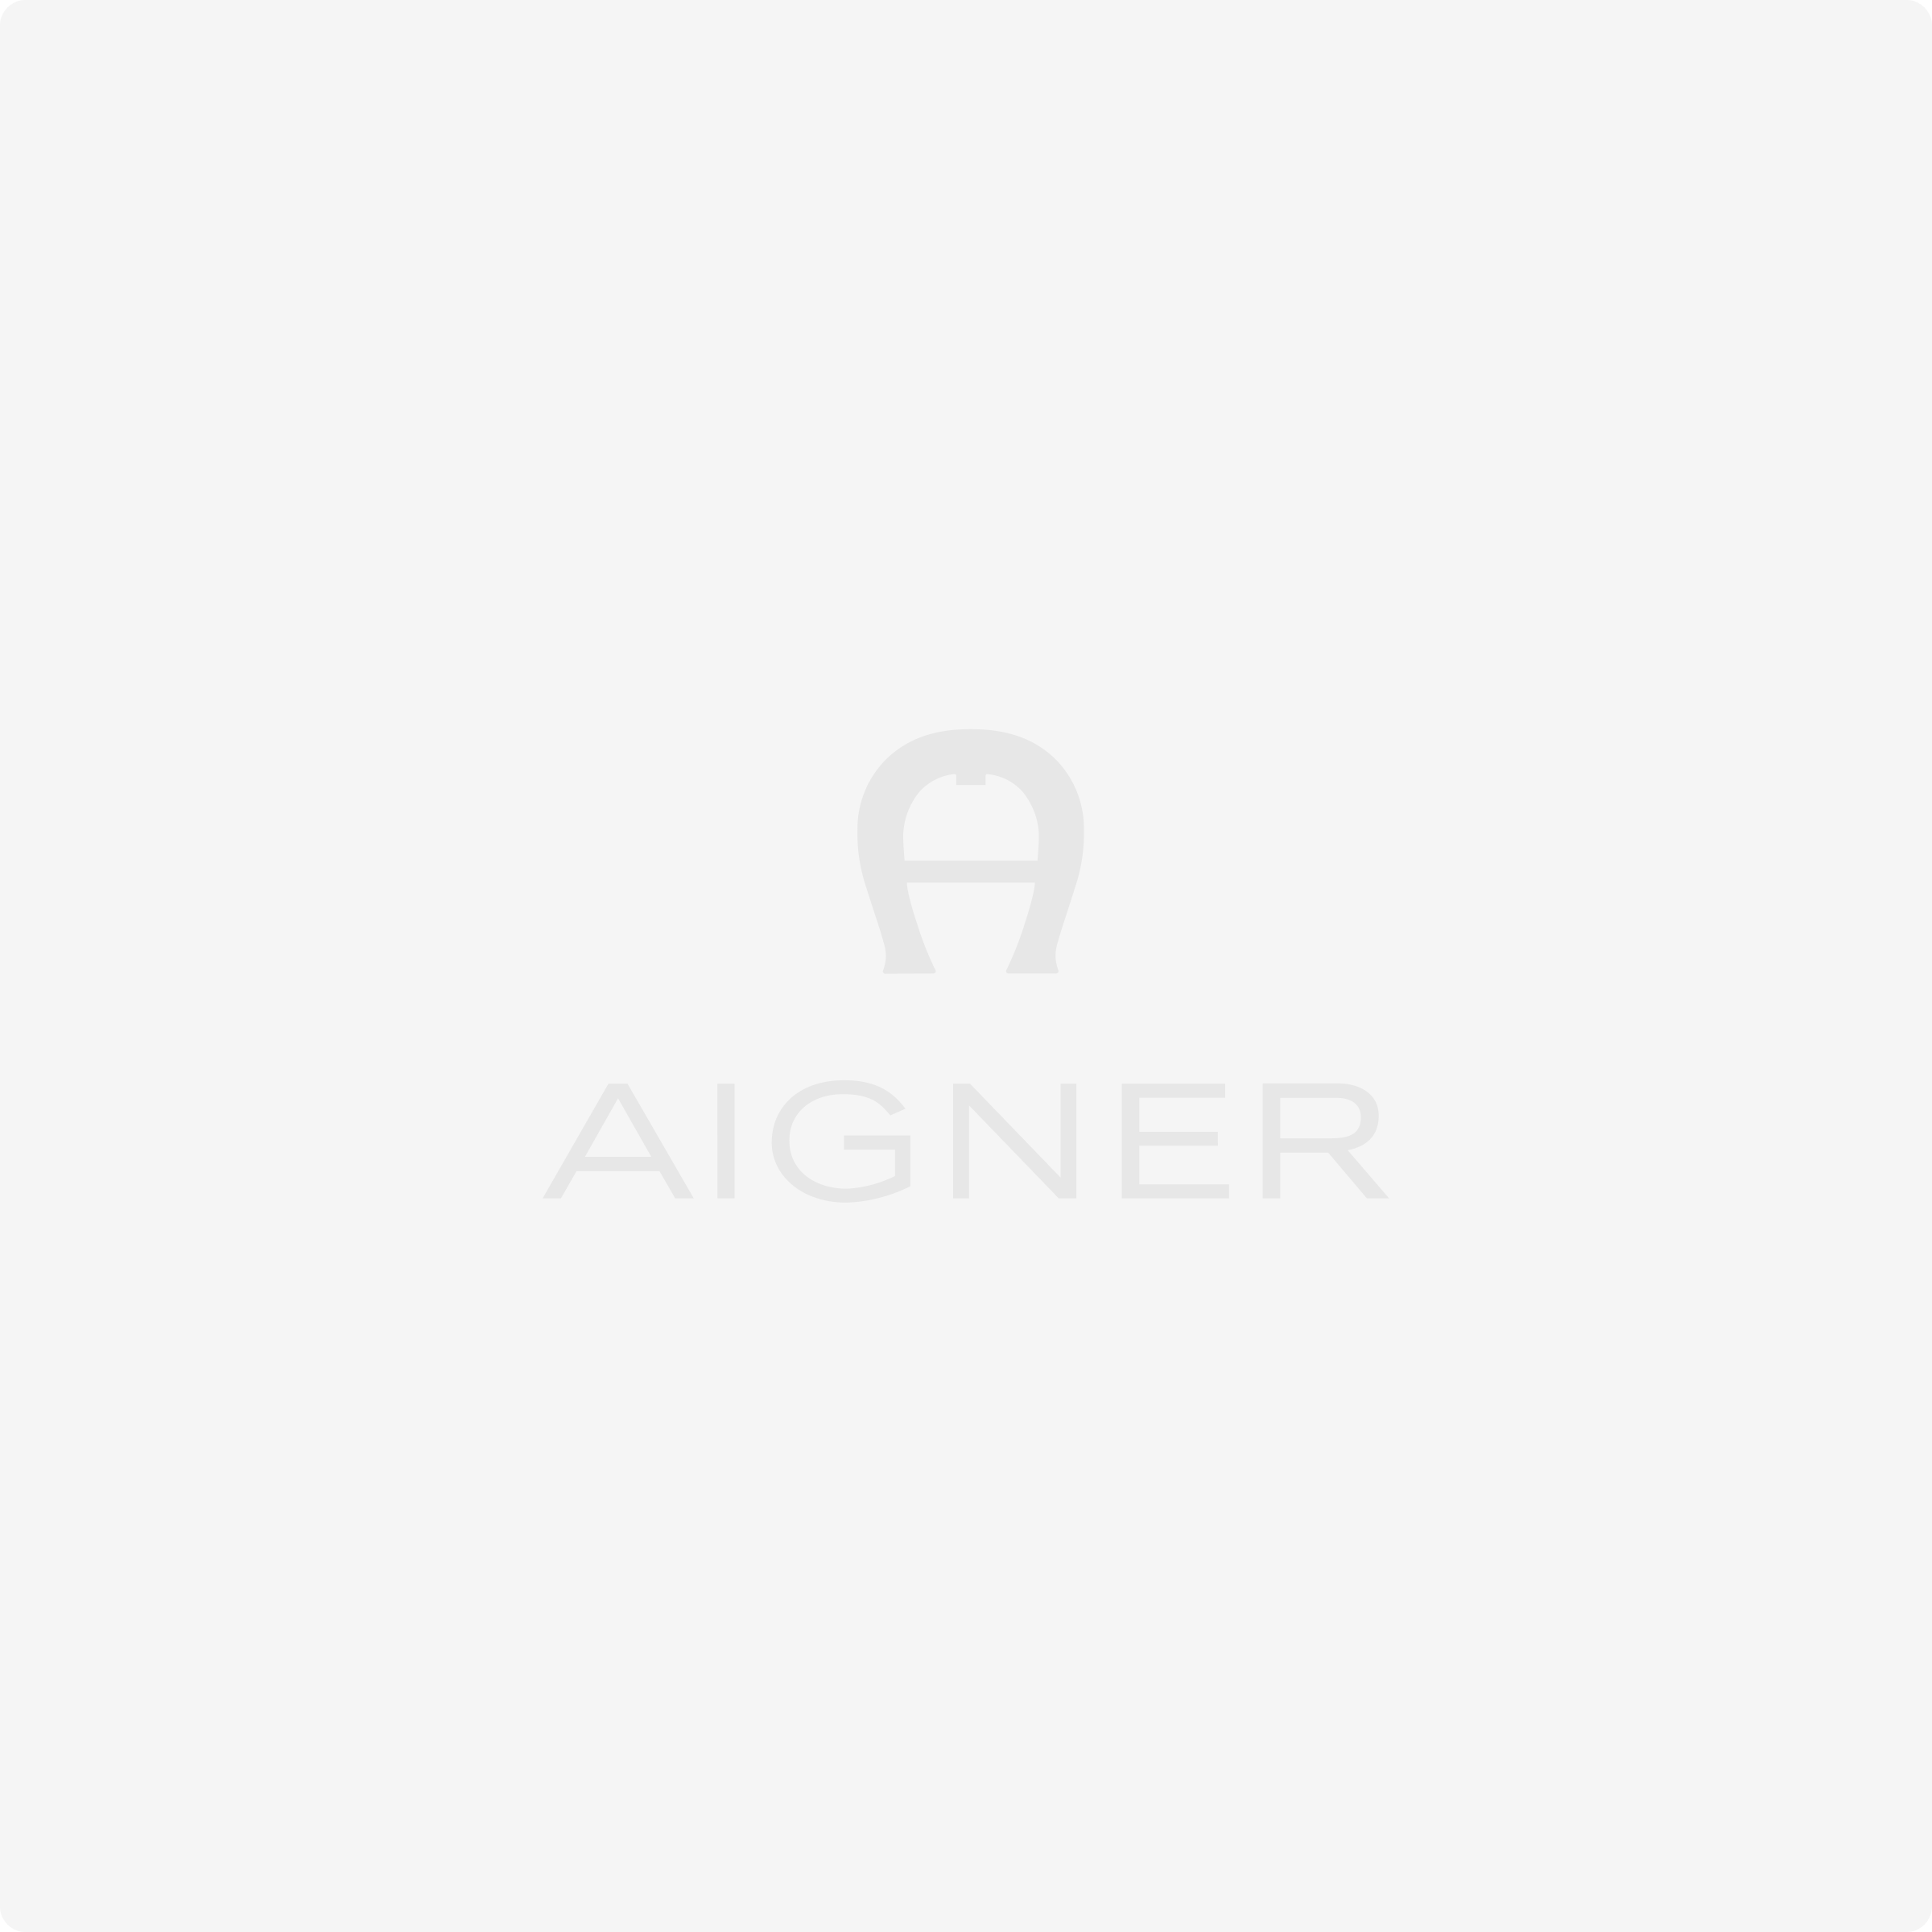 LOGO Bill and card case